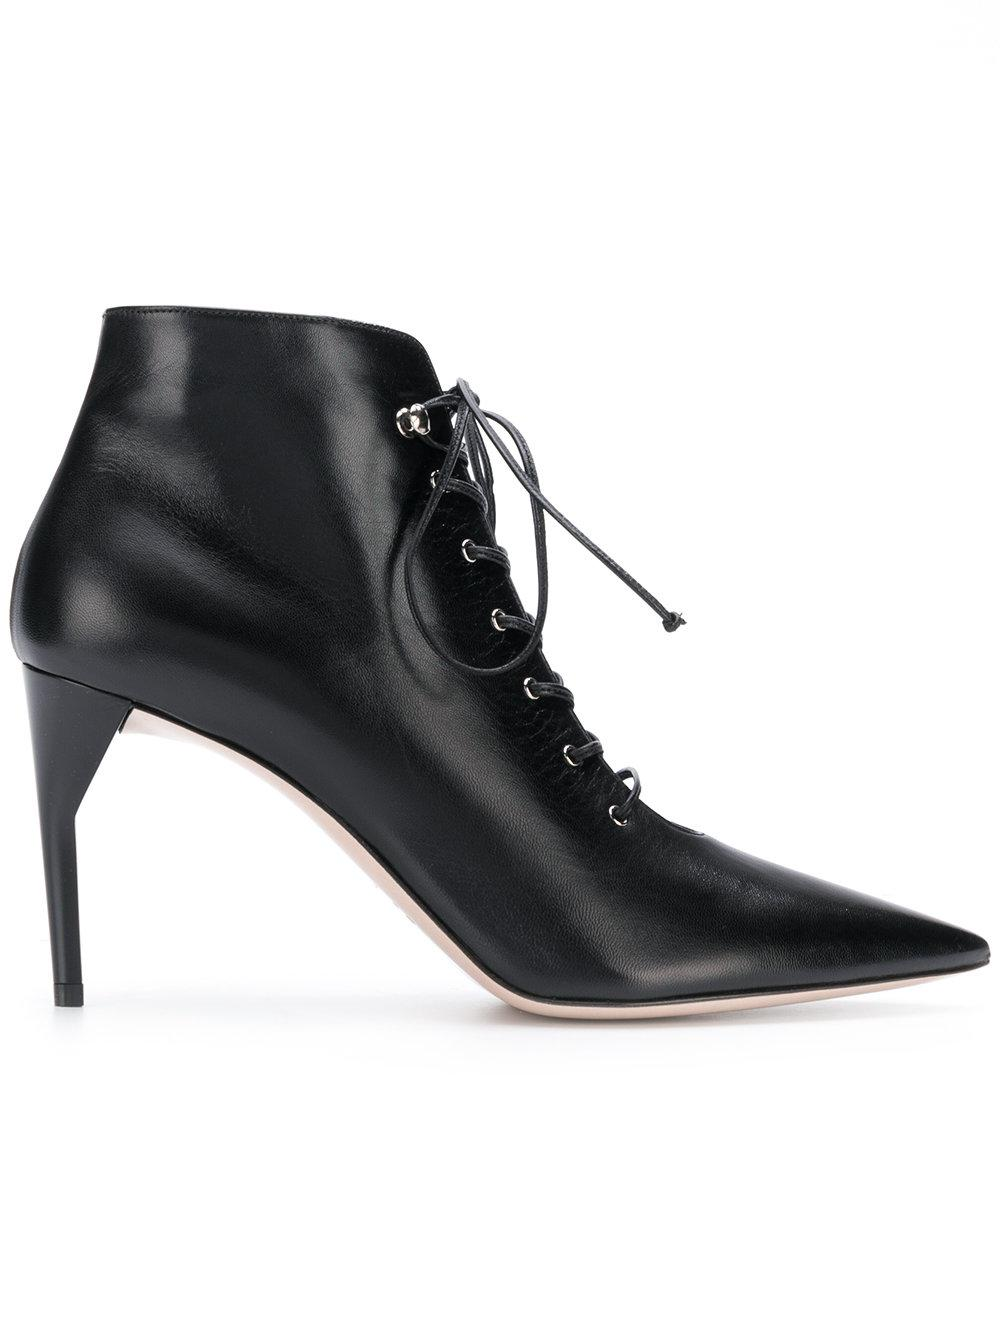 fe7eff473caa Lyst - Miu Miu Lace Up Ankle Boots in Black